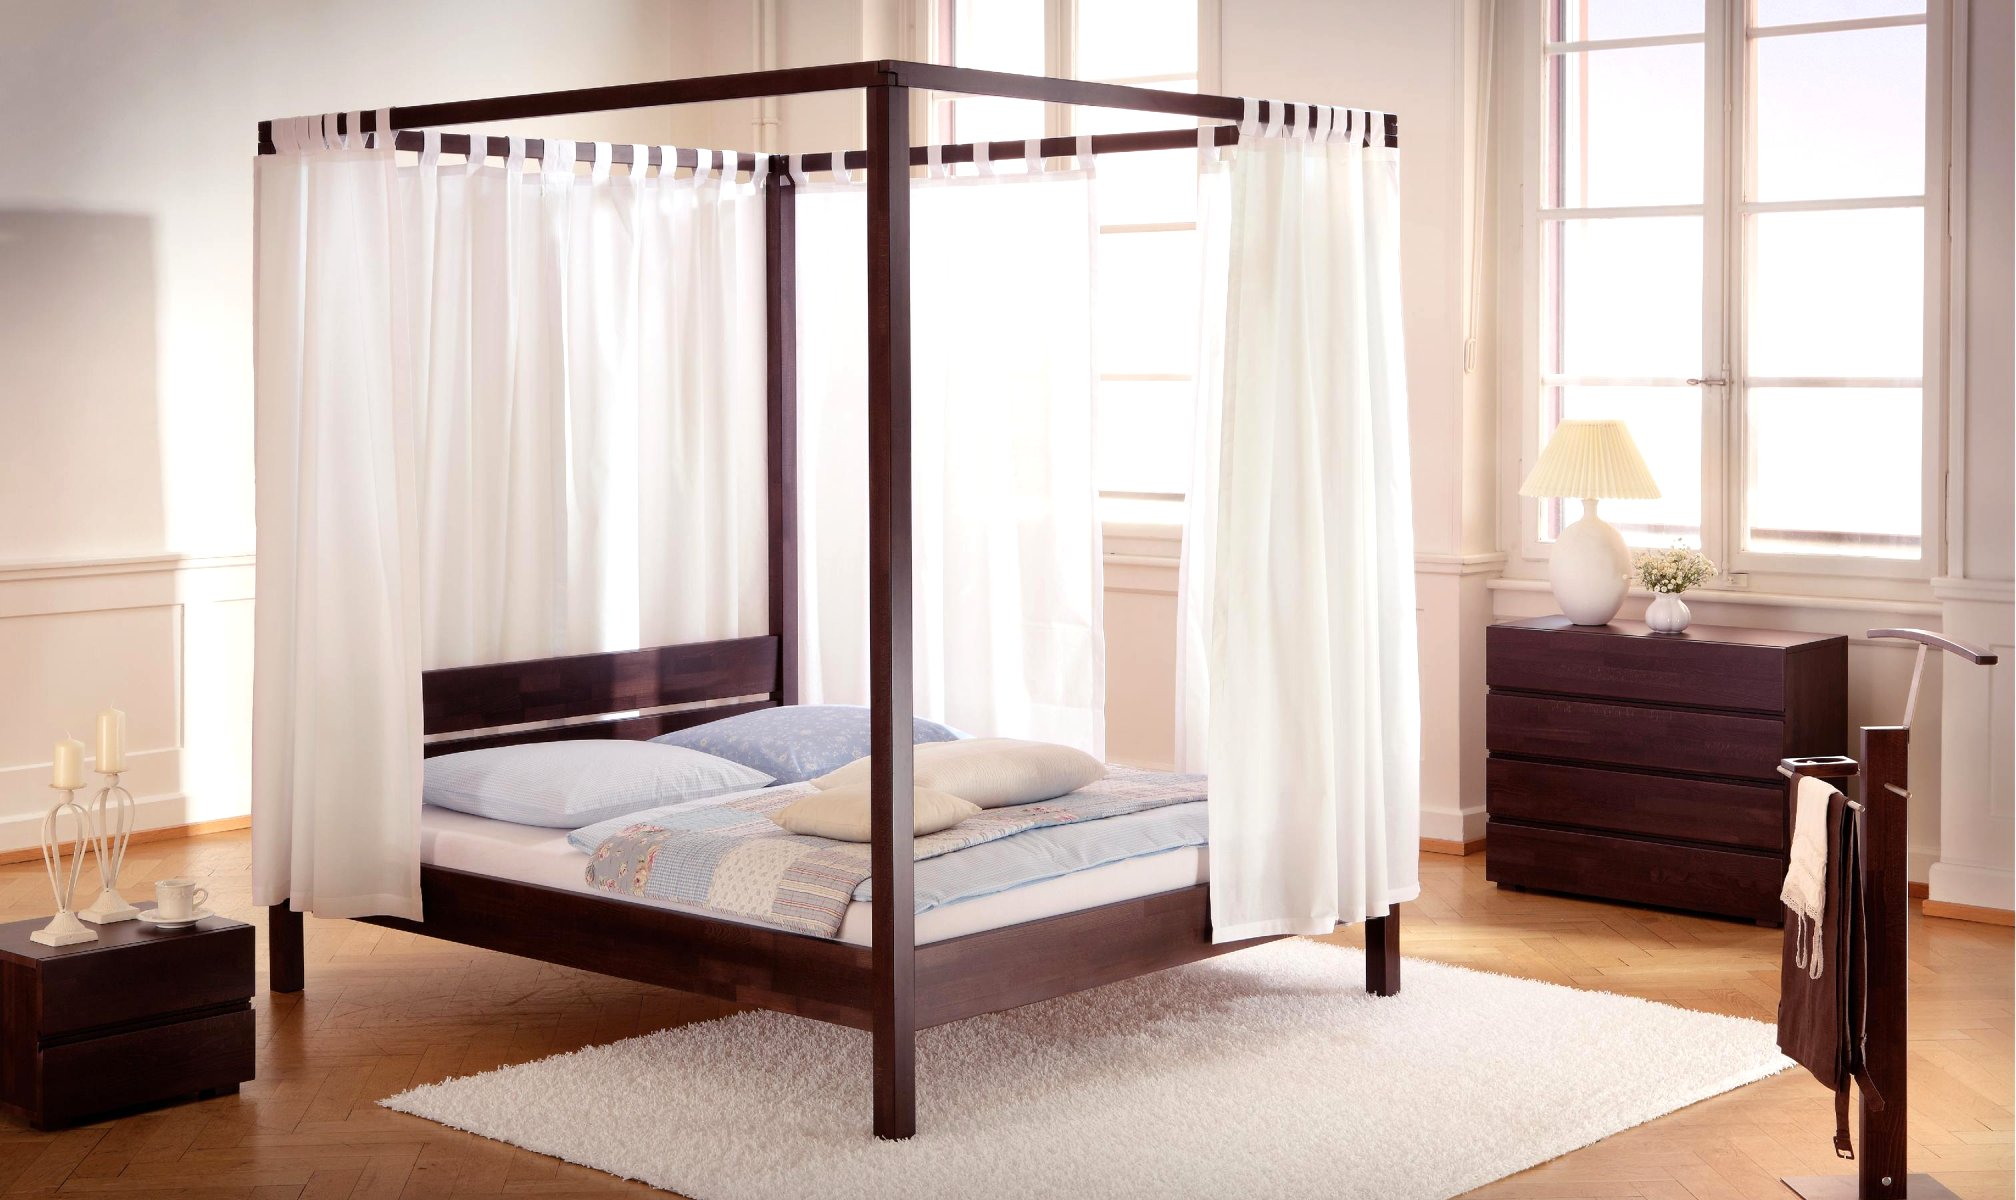 lit baldaquin avec rideaux two coussins sunny wood line hasena. Black Bedroom Furniture Sets. Home Design Ideas